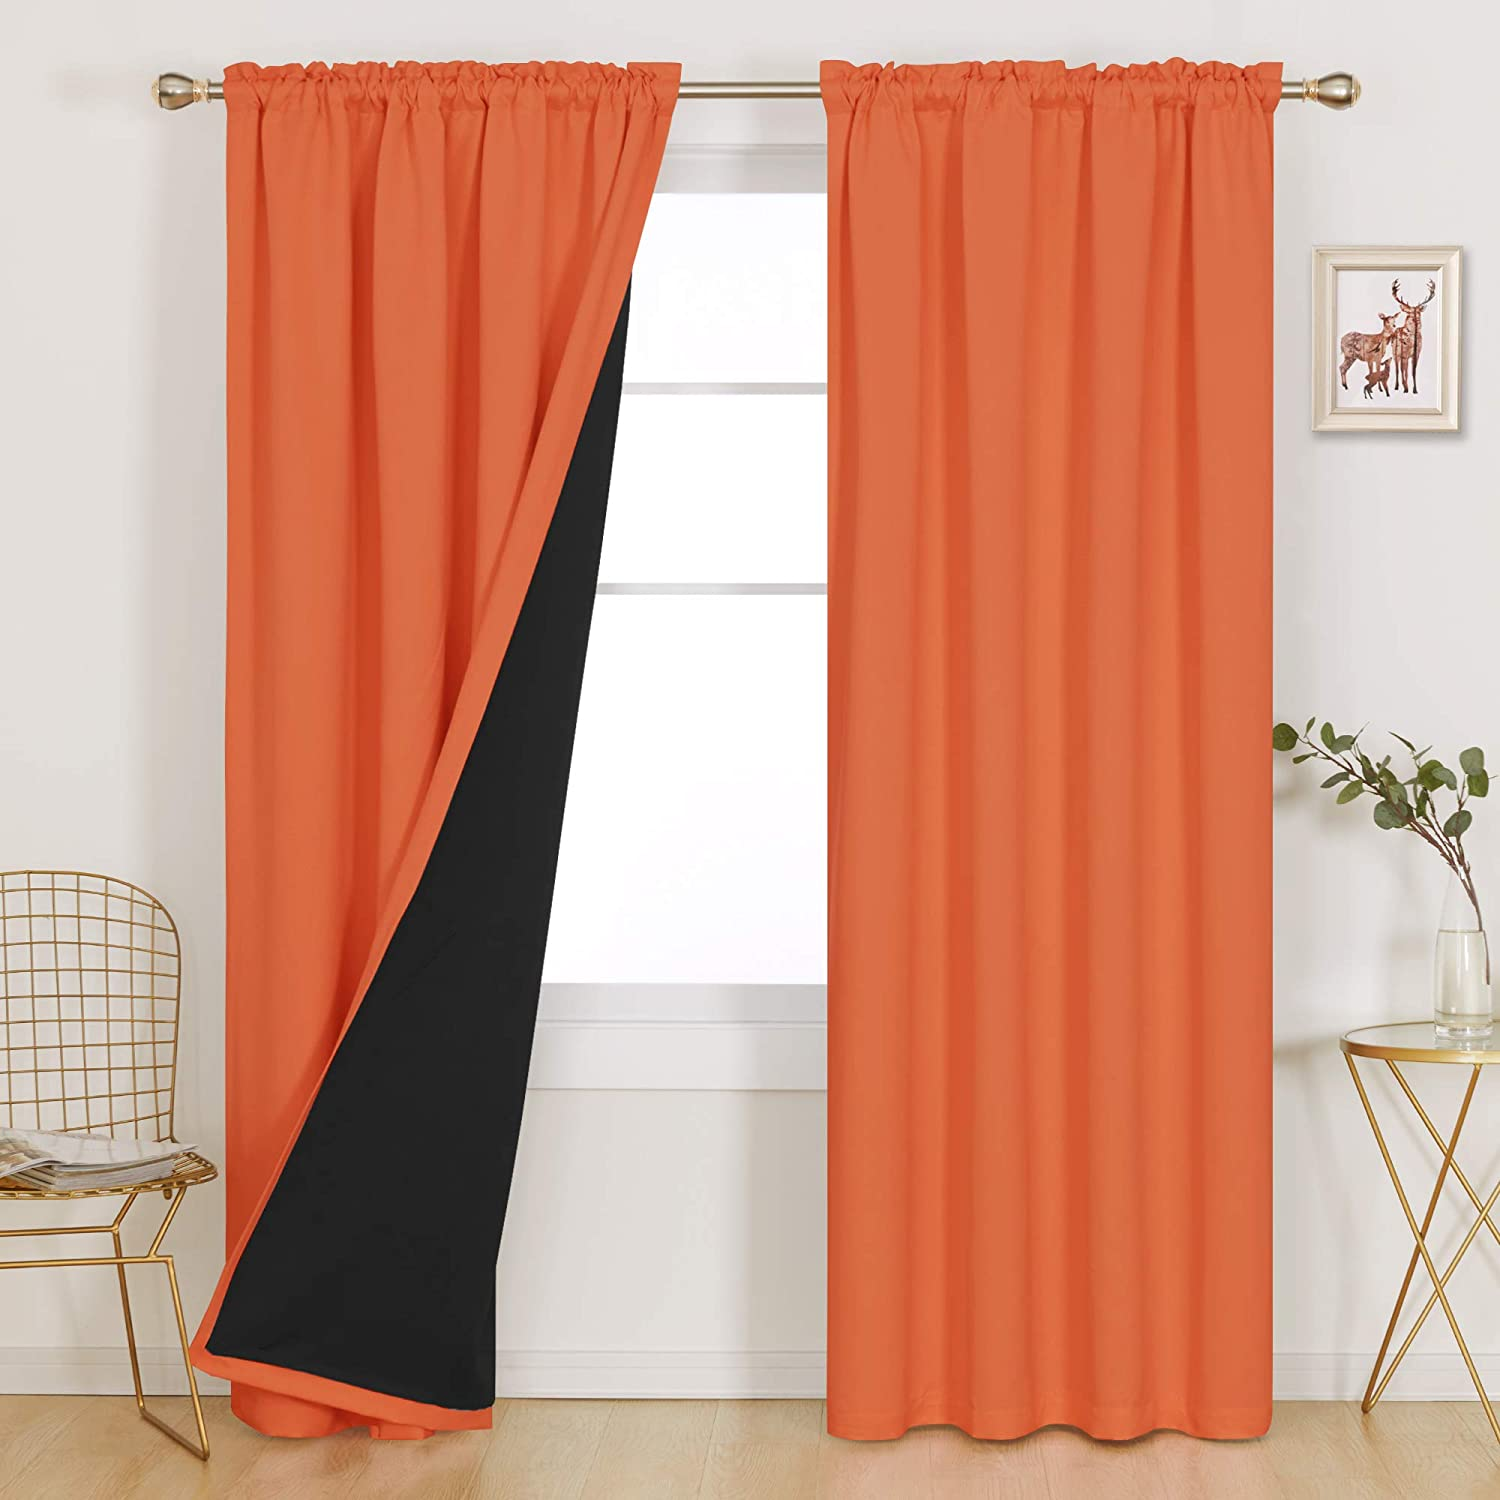 Deconovo Thermal Insulated Total Blackout Curtains Double Layer Backing 100% Full Light Noise Blocking Rod Pocket Window Drapery for Bedroom Living Room, 1 Pair, 52x95 in Each Panel, Orange